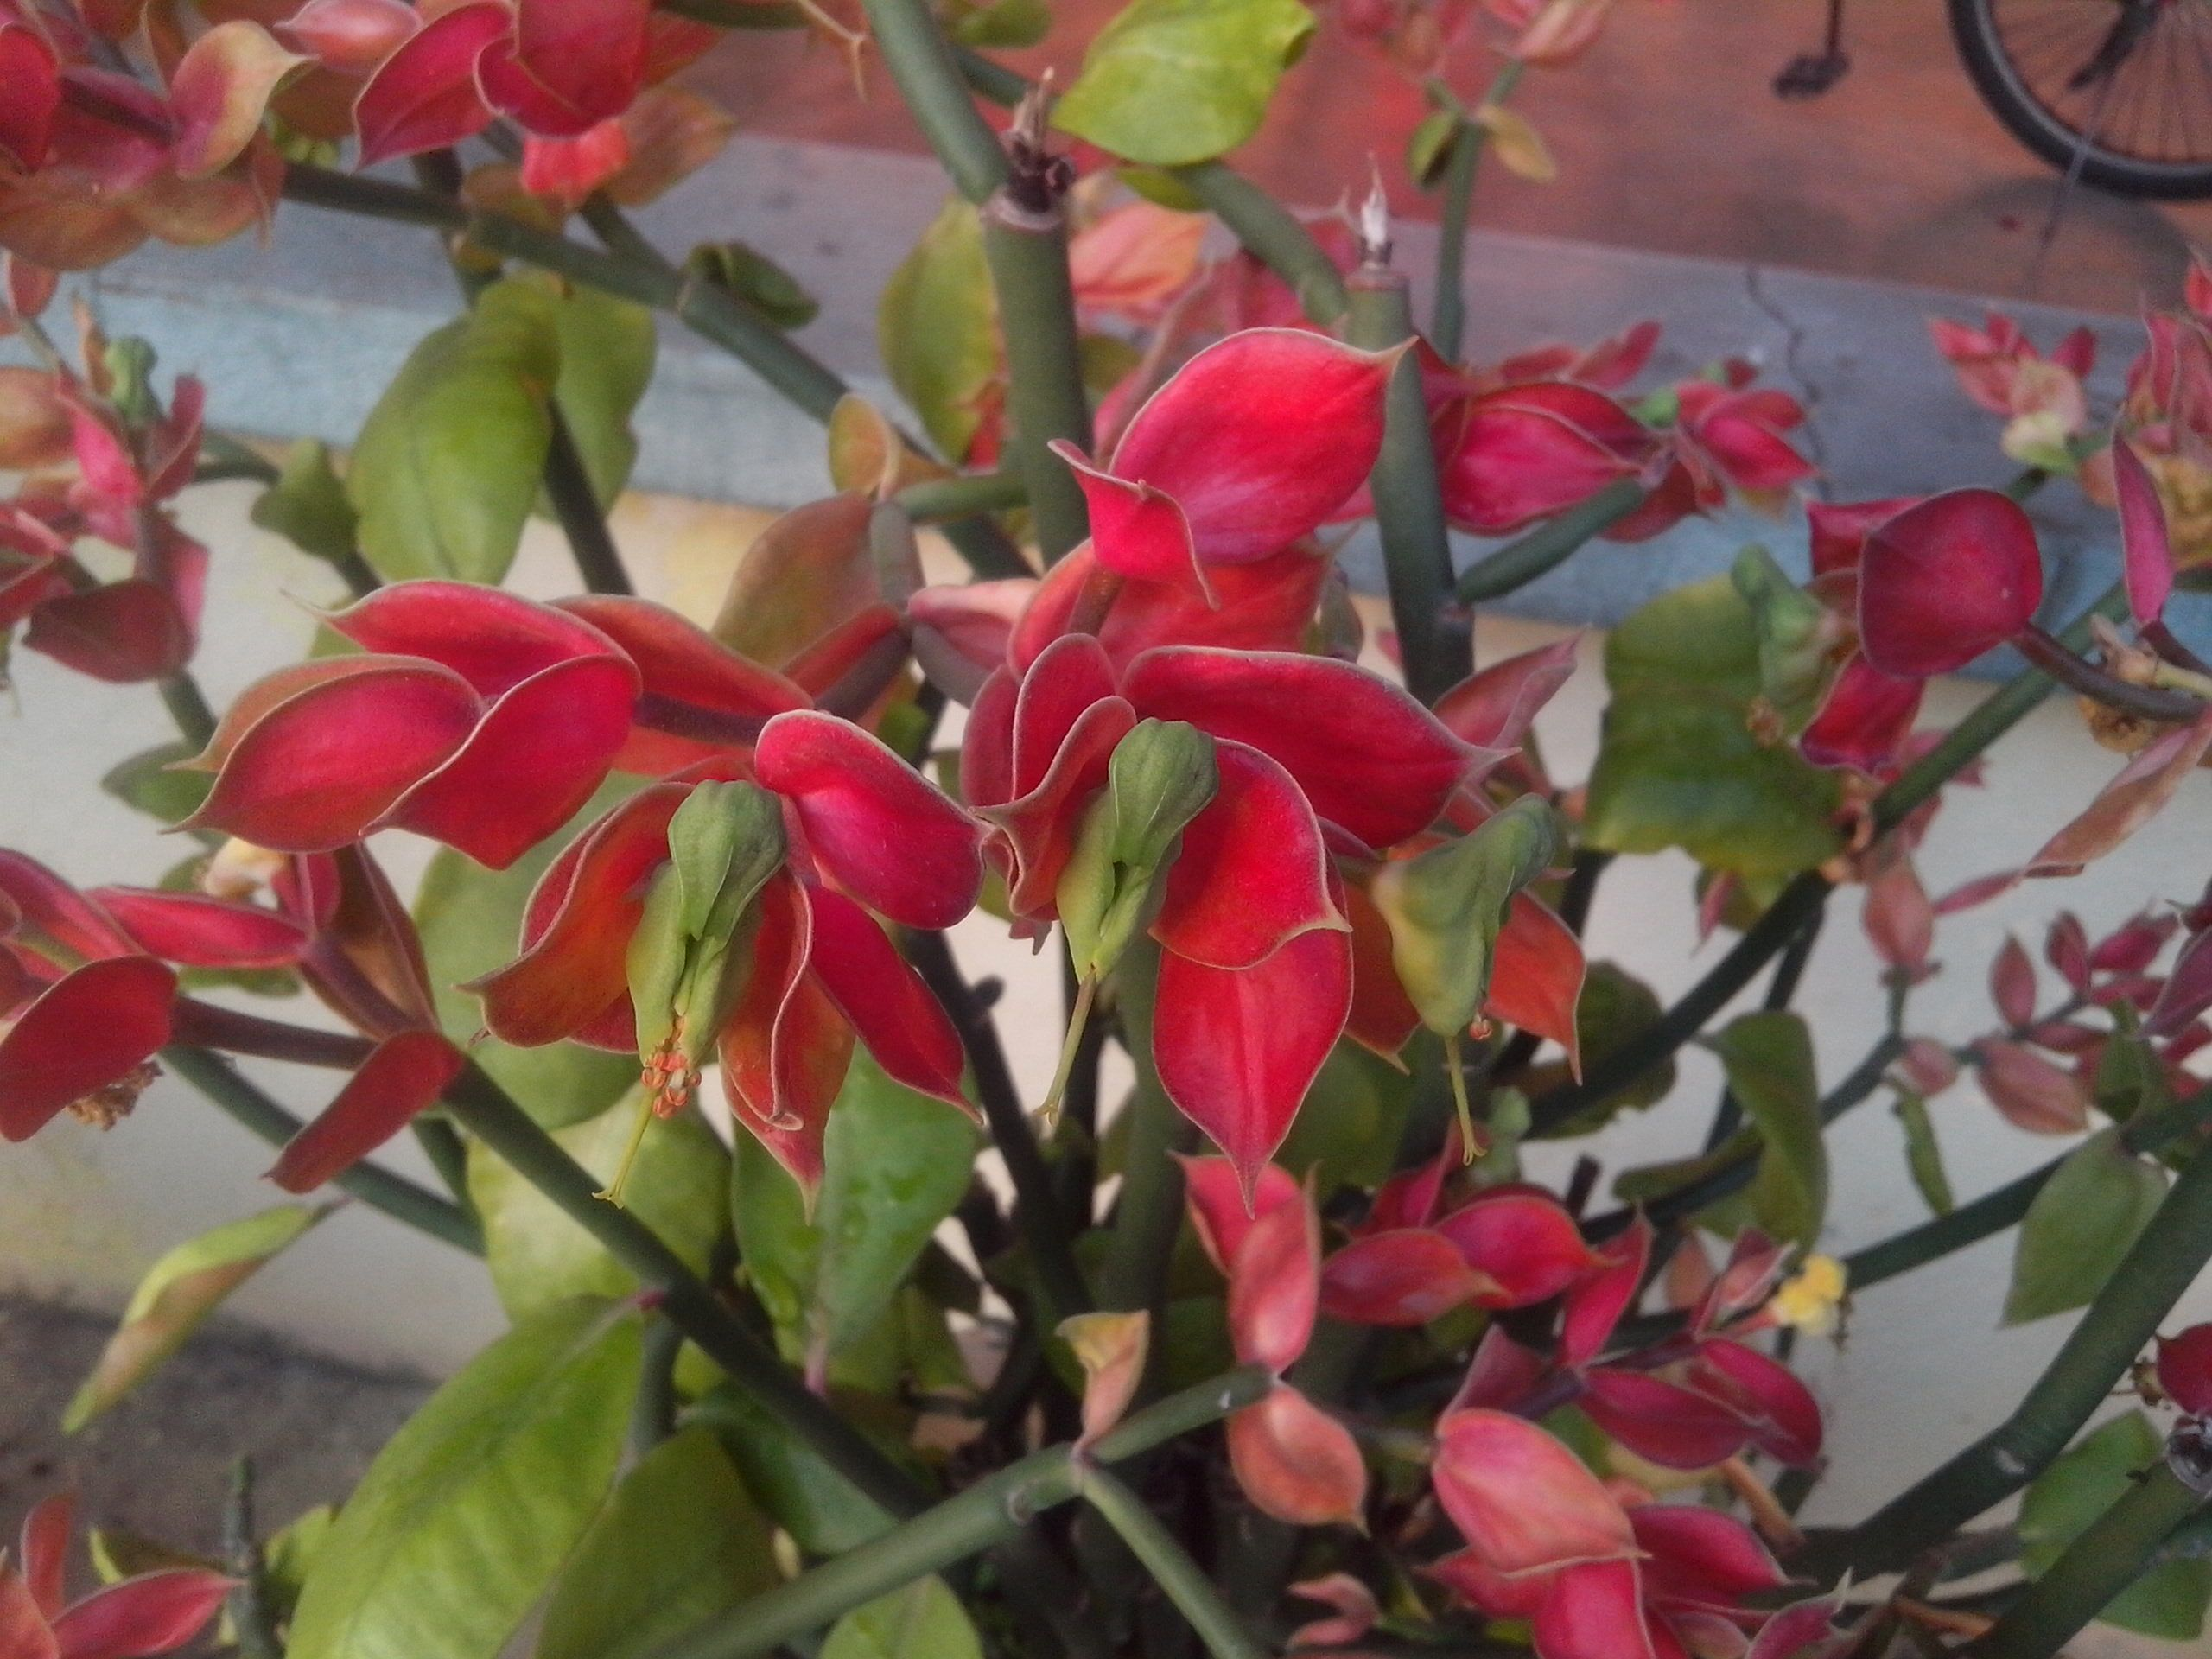 How To Bring Good Luck euphorbia coalcomanensis or little bird flower. this plant